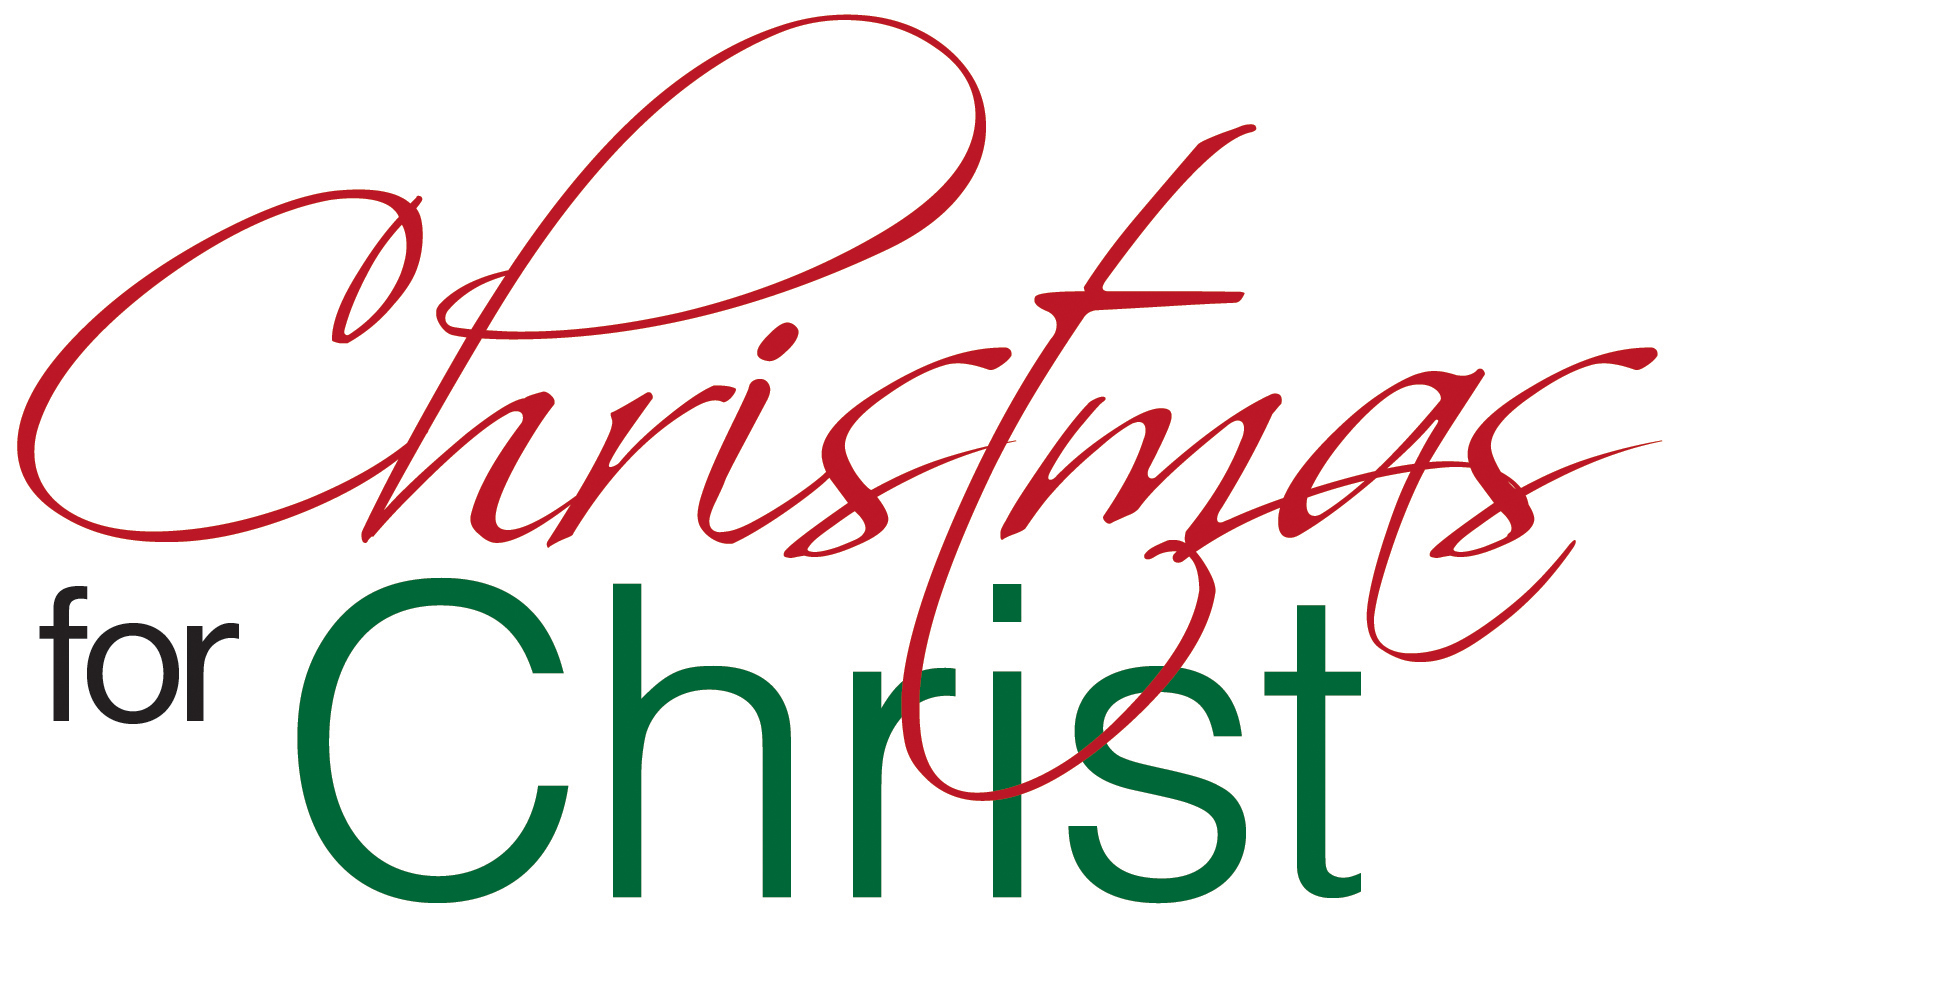 Free Sacred Christmas Cliparts, Download Free Clip Art, Free.